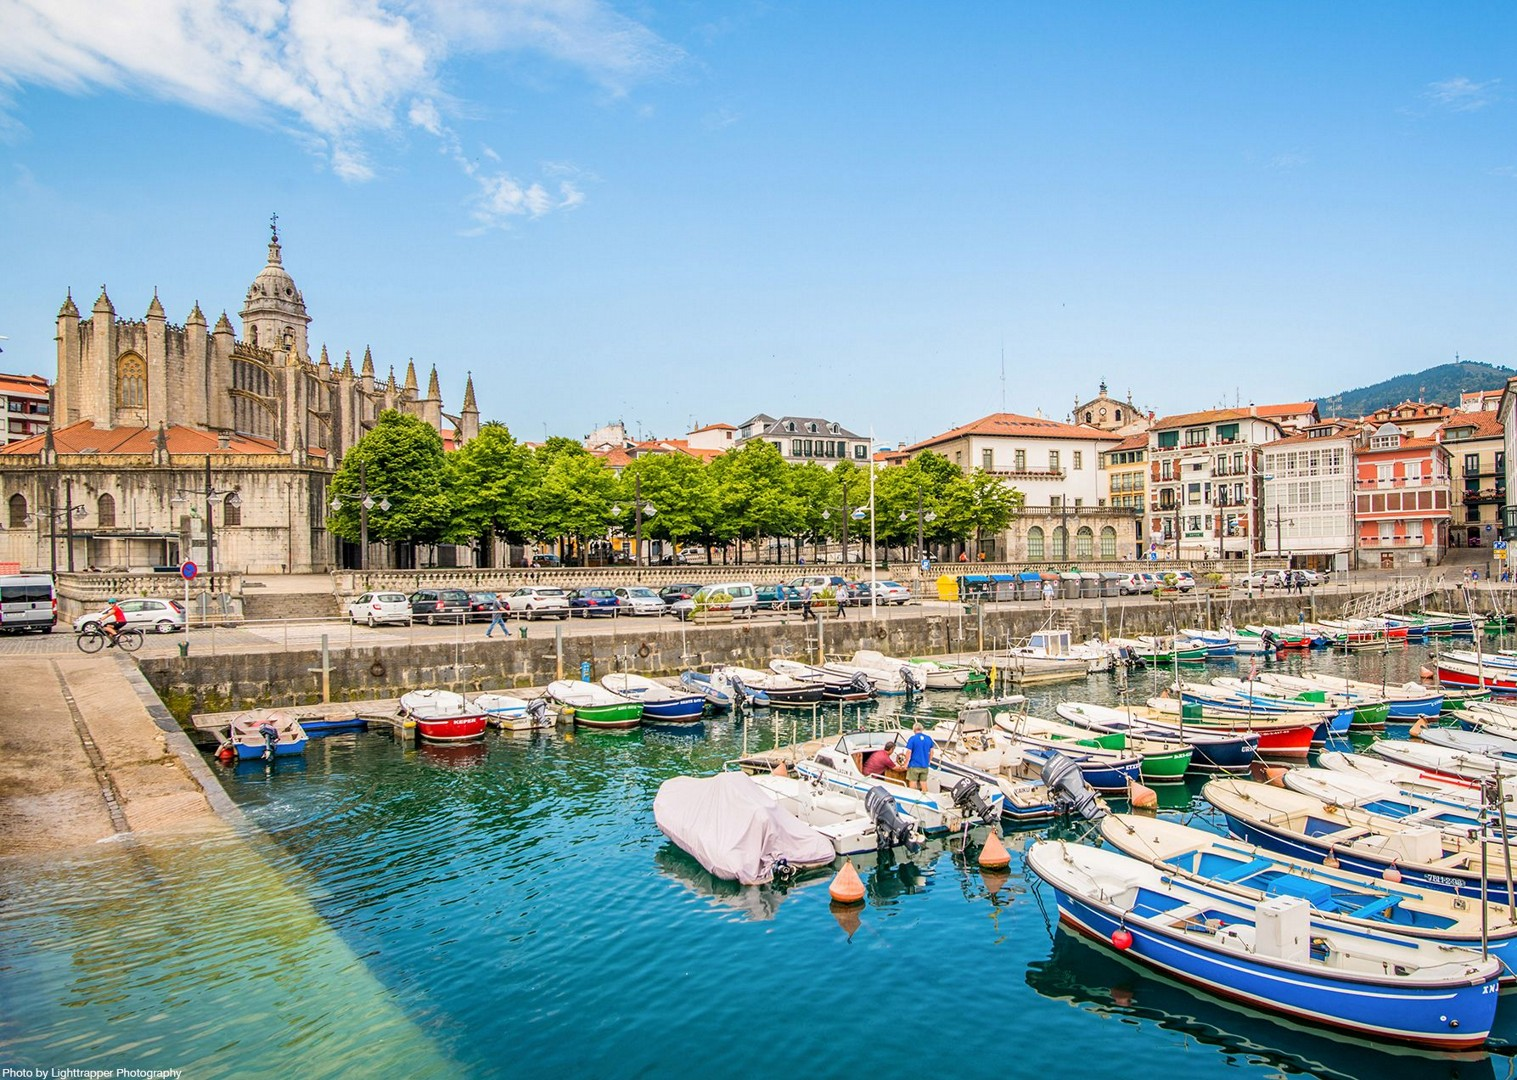 harbour-spain-leisure-cycling-trip-self-guided-holiday.jpg - NEW! Spain - Bilbao to San Sebastian - Leisure Cycling